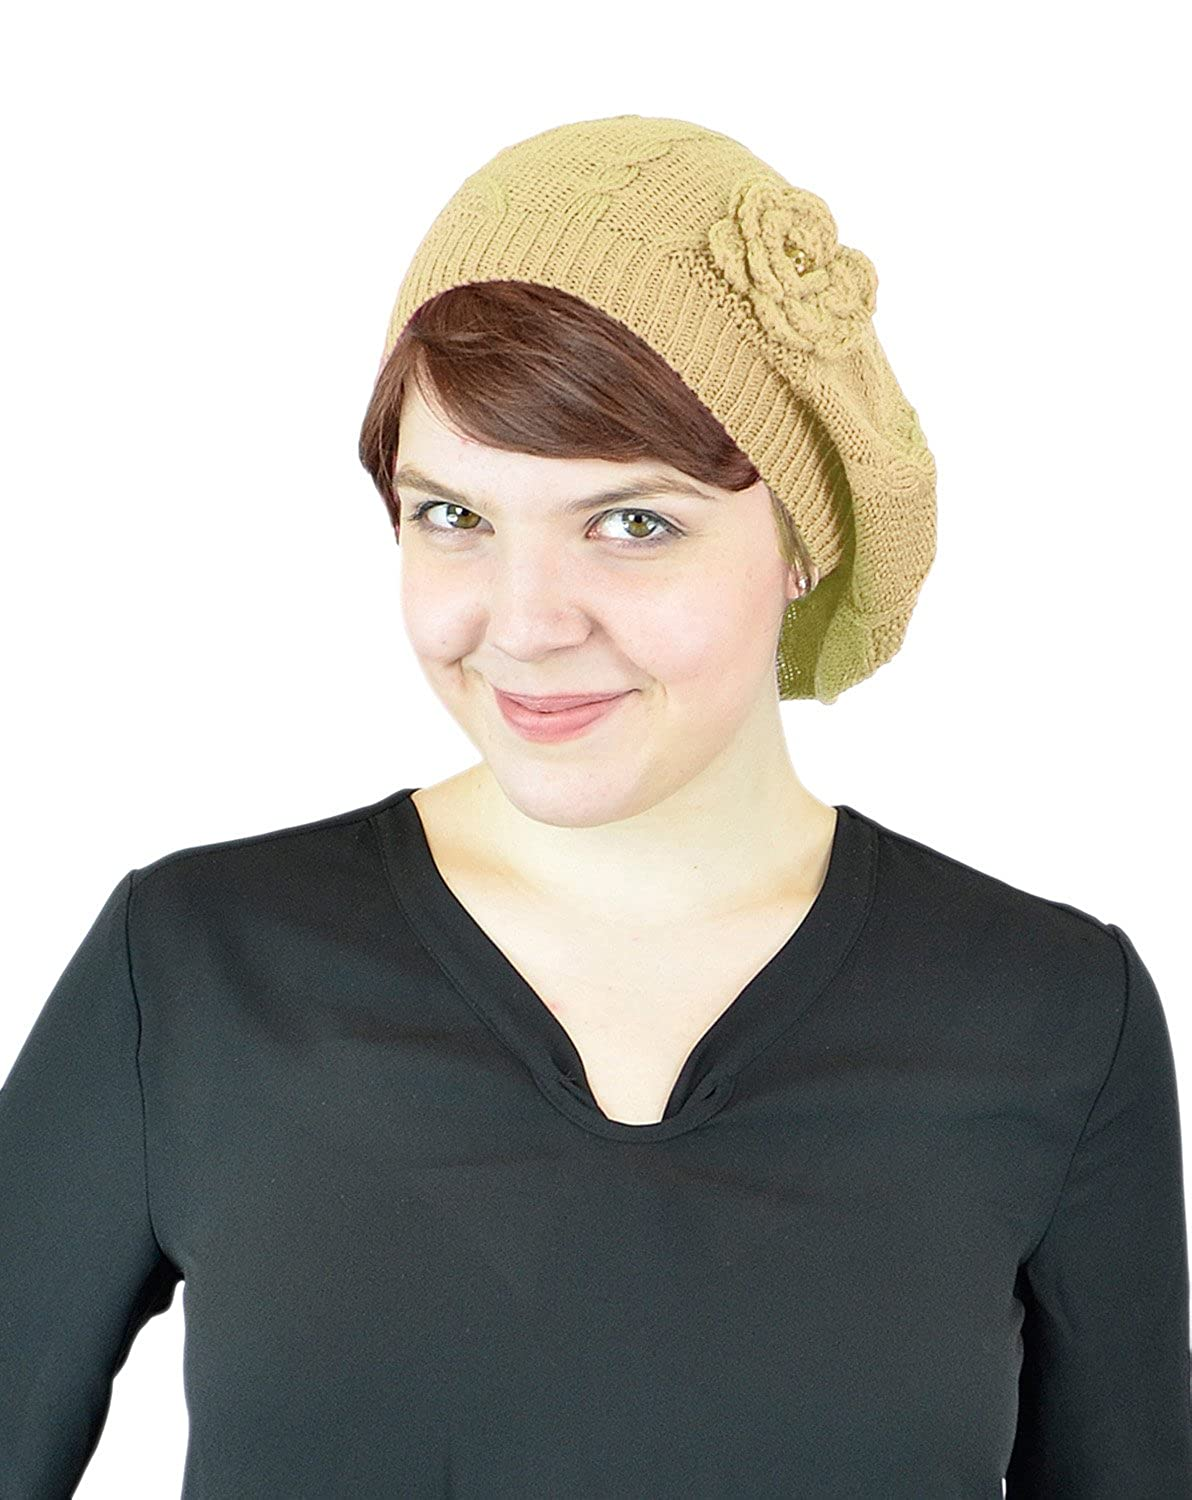 Belle Donne -Women's Without Flower Accented Stretch French Beret Hat OPT-HAT-H8002-Black